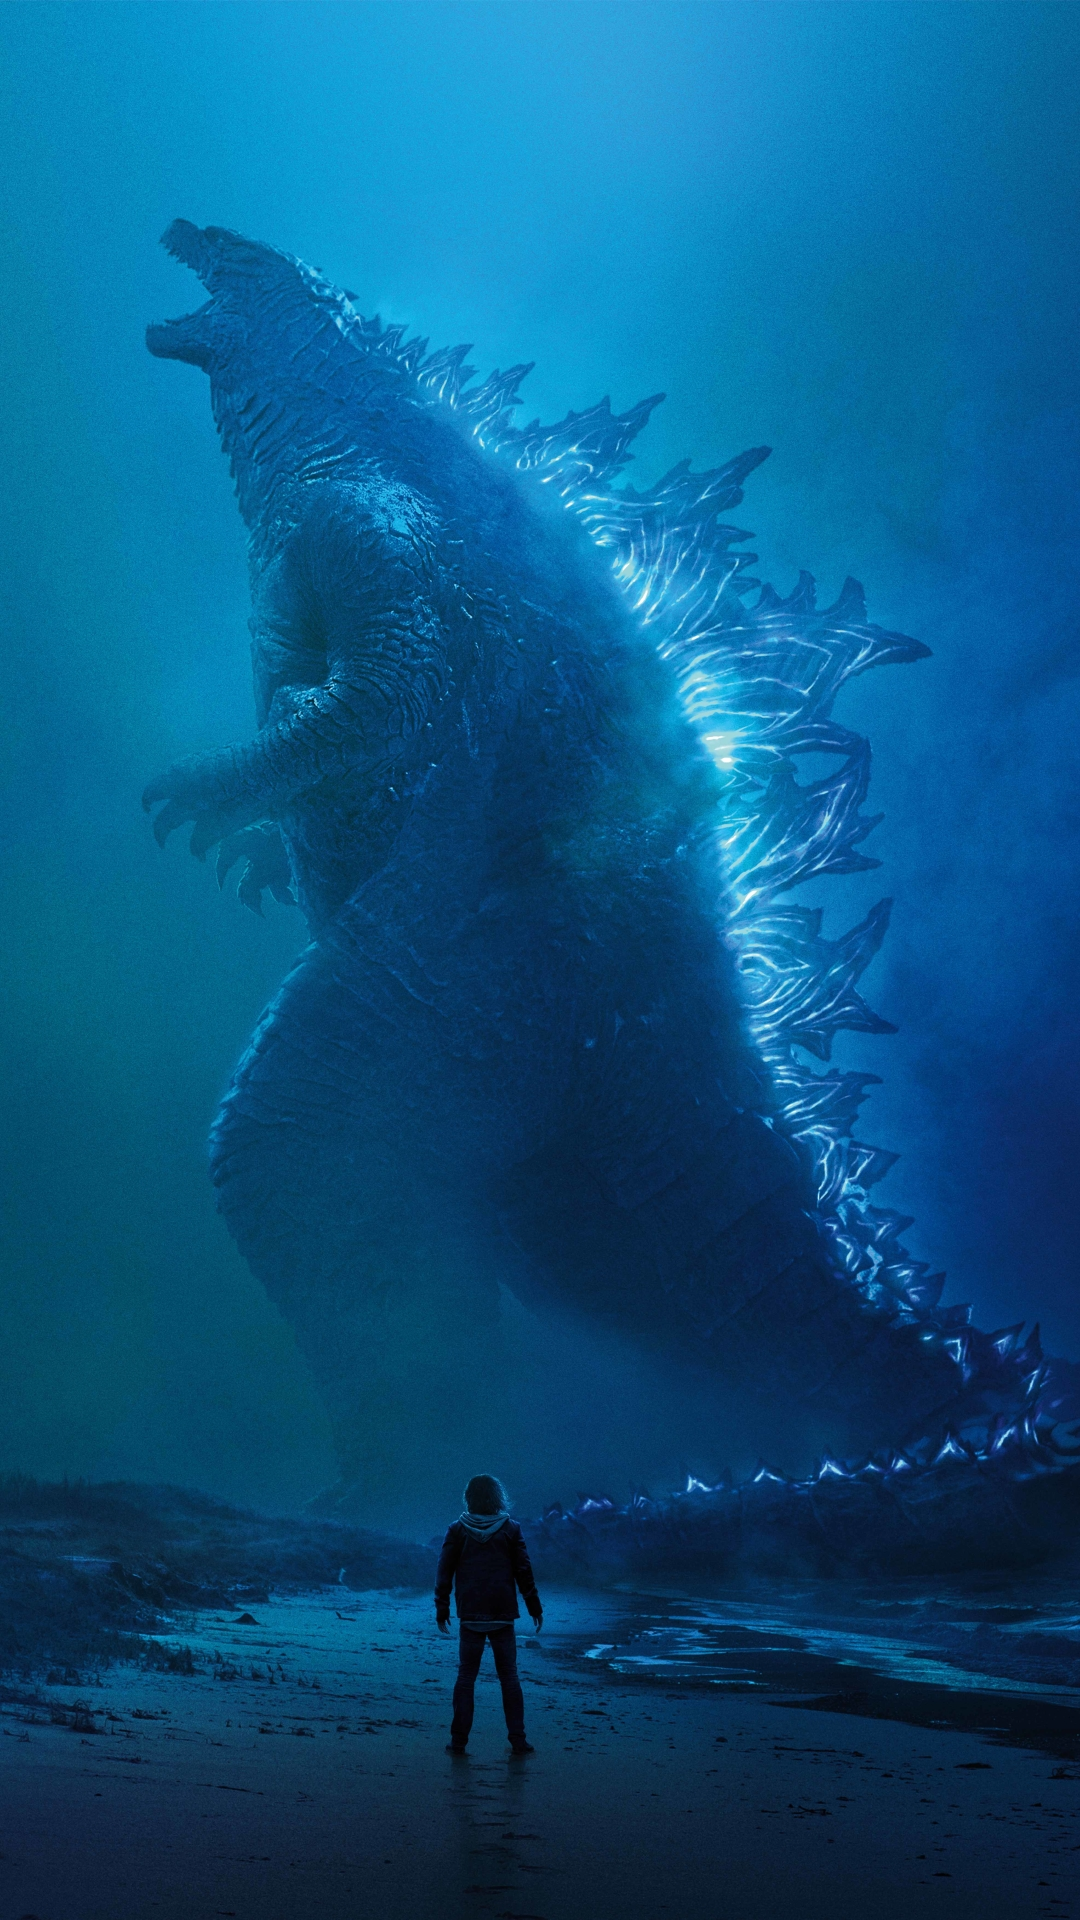 1080x1920 Godzilla King of the Monsters Poster 8K Iphone 7 ...